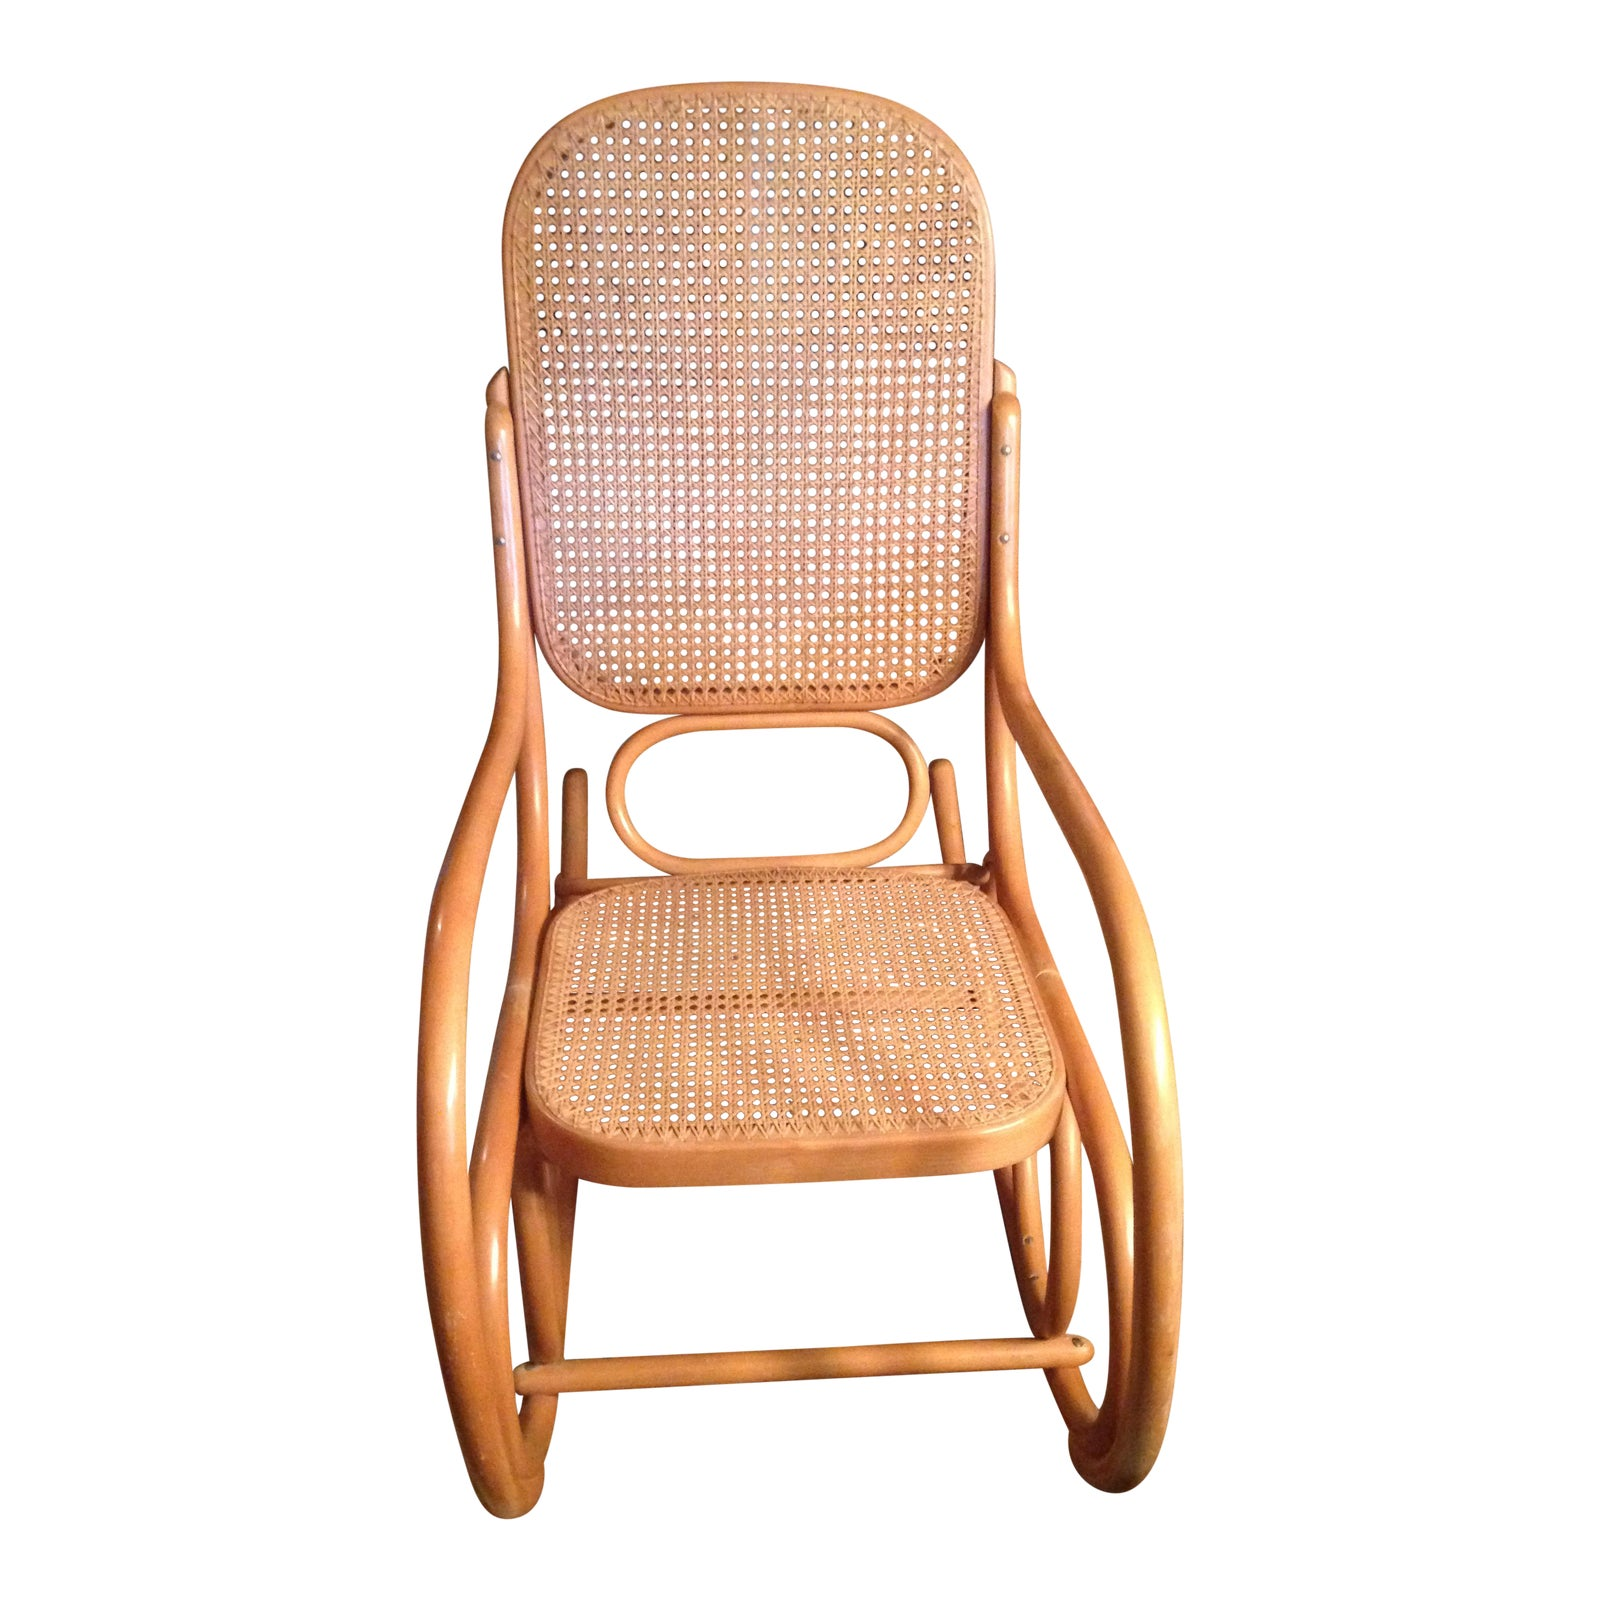 great mid century rocking to s chairs chair designs in modern ah image particular nursery pretty